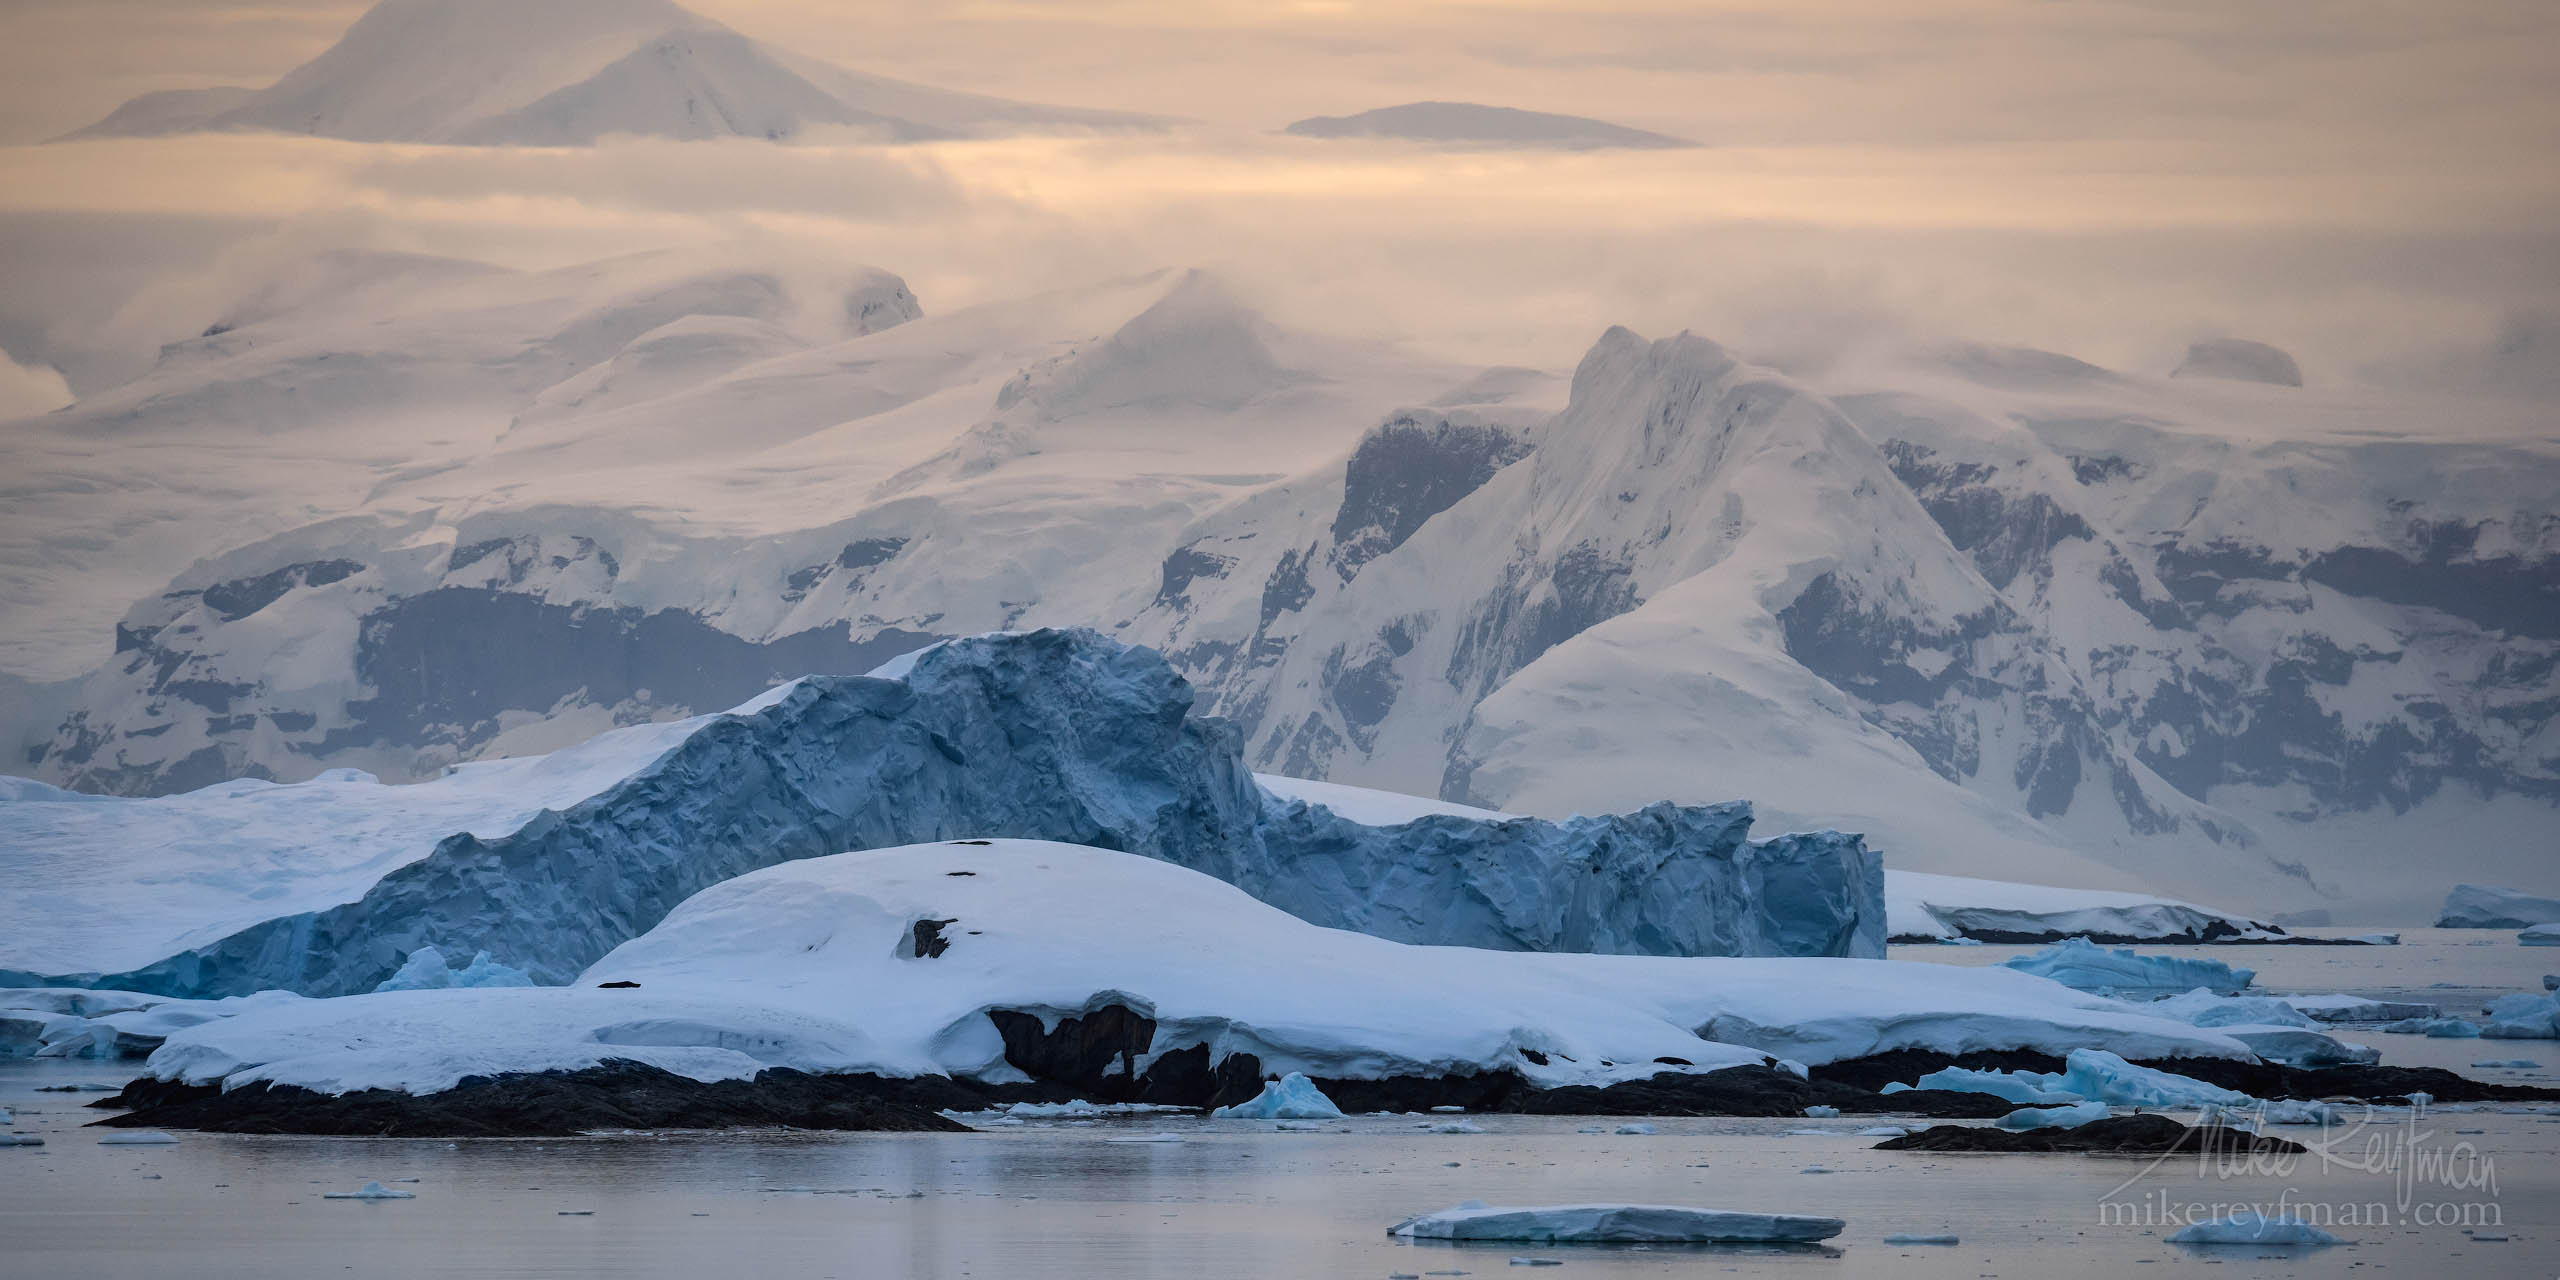 Moody evening in Gerlarhe Strait -a channel separating the Palmer Archipelago from the Antarctic Peninsula. P12-MRD1A1971-72 - Selected panoramic images with 2:1 aspect ratio - Mike Reyfman Photography